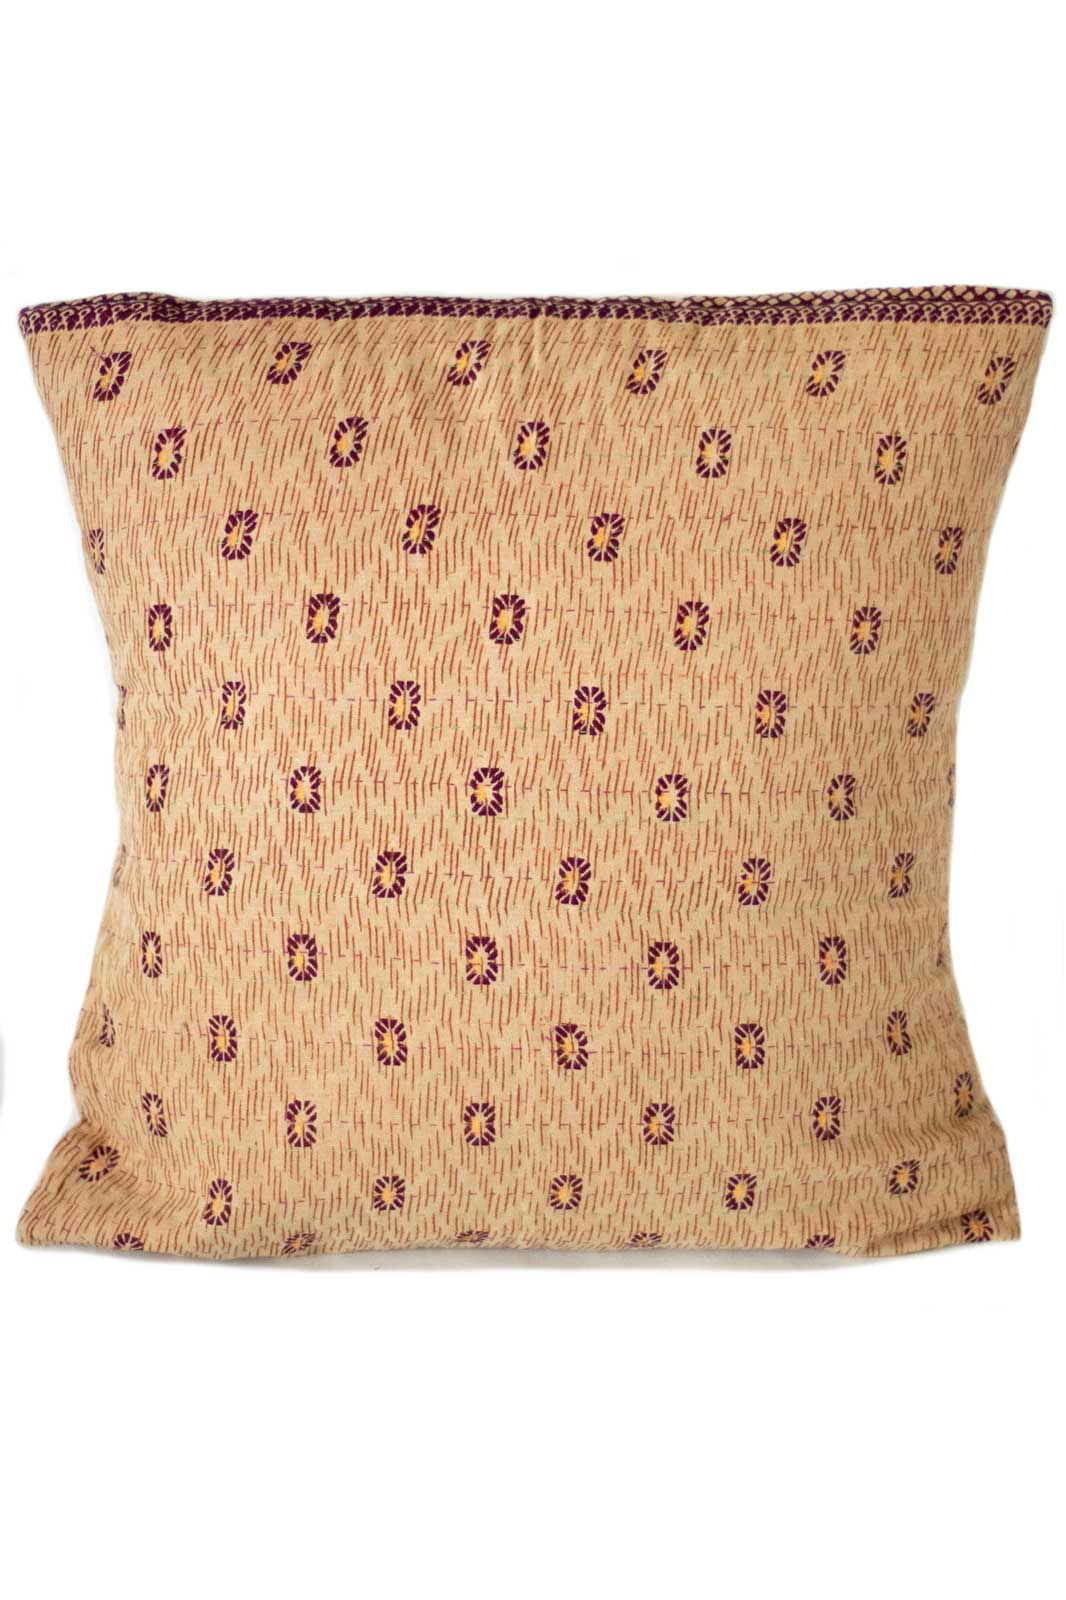 Intricate no. 8 Kantha Pillow Cover